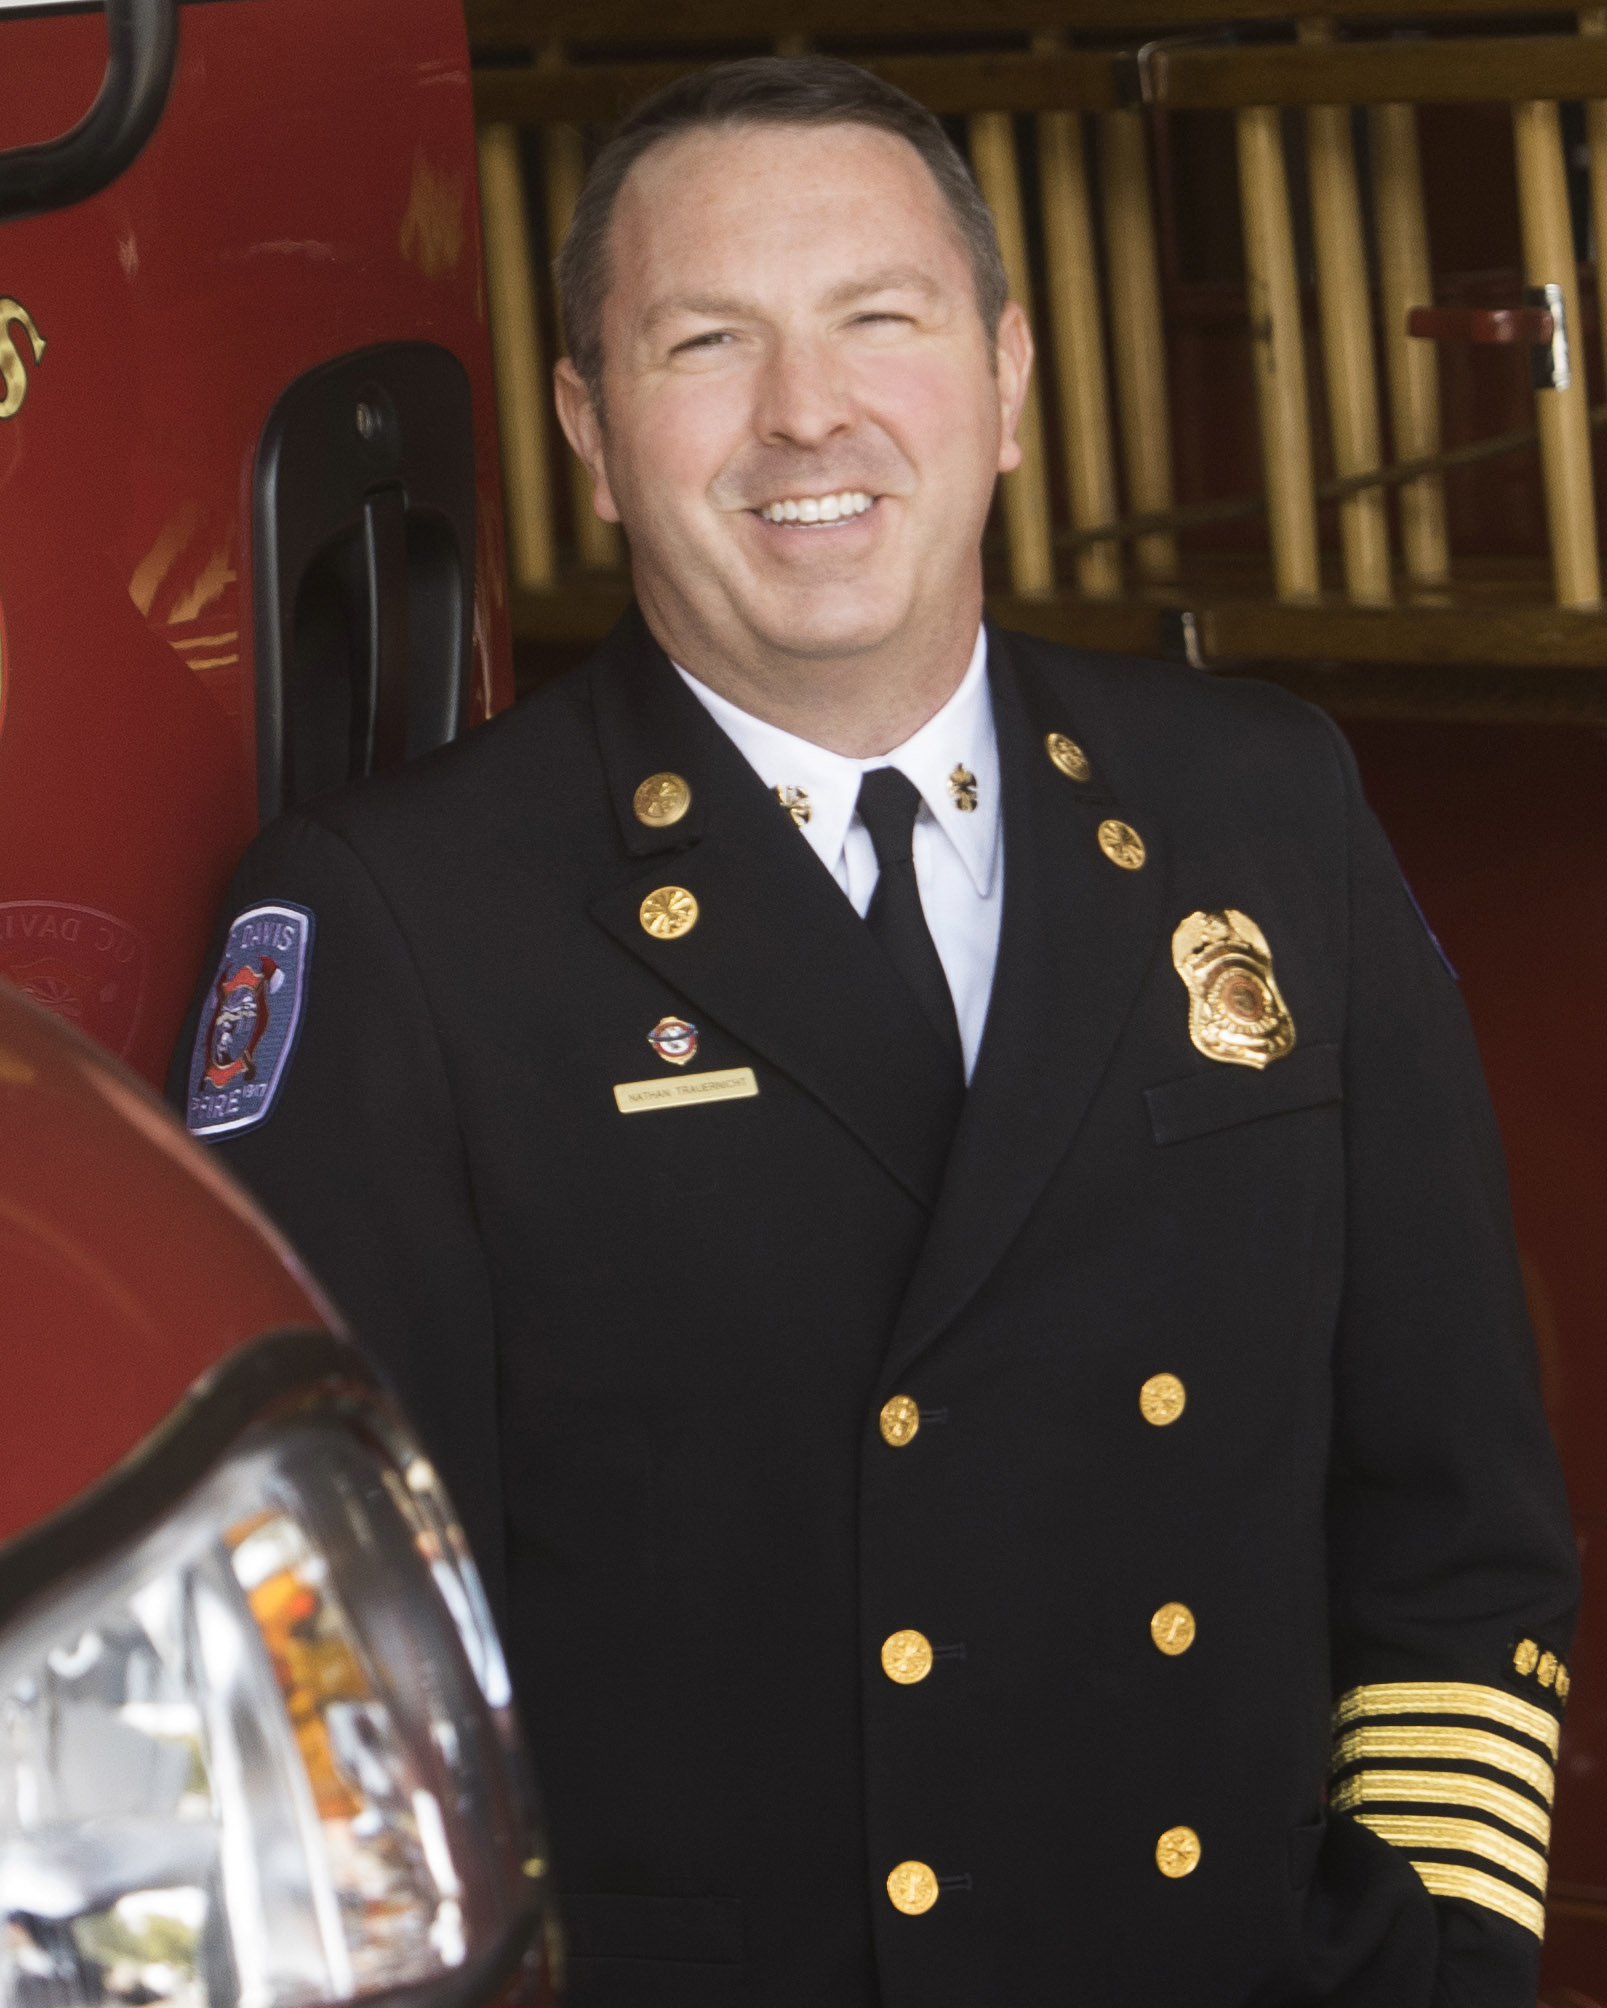 UC Davis Fire Chief Nathan Trauernicht